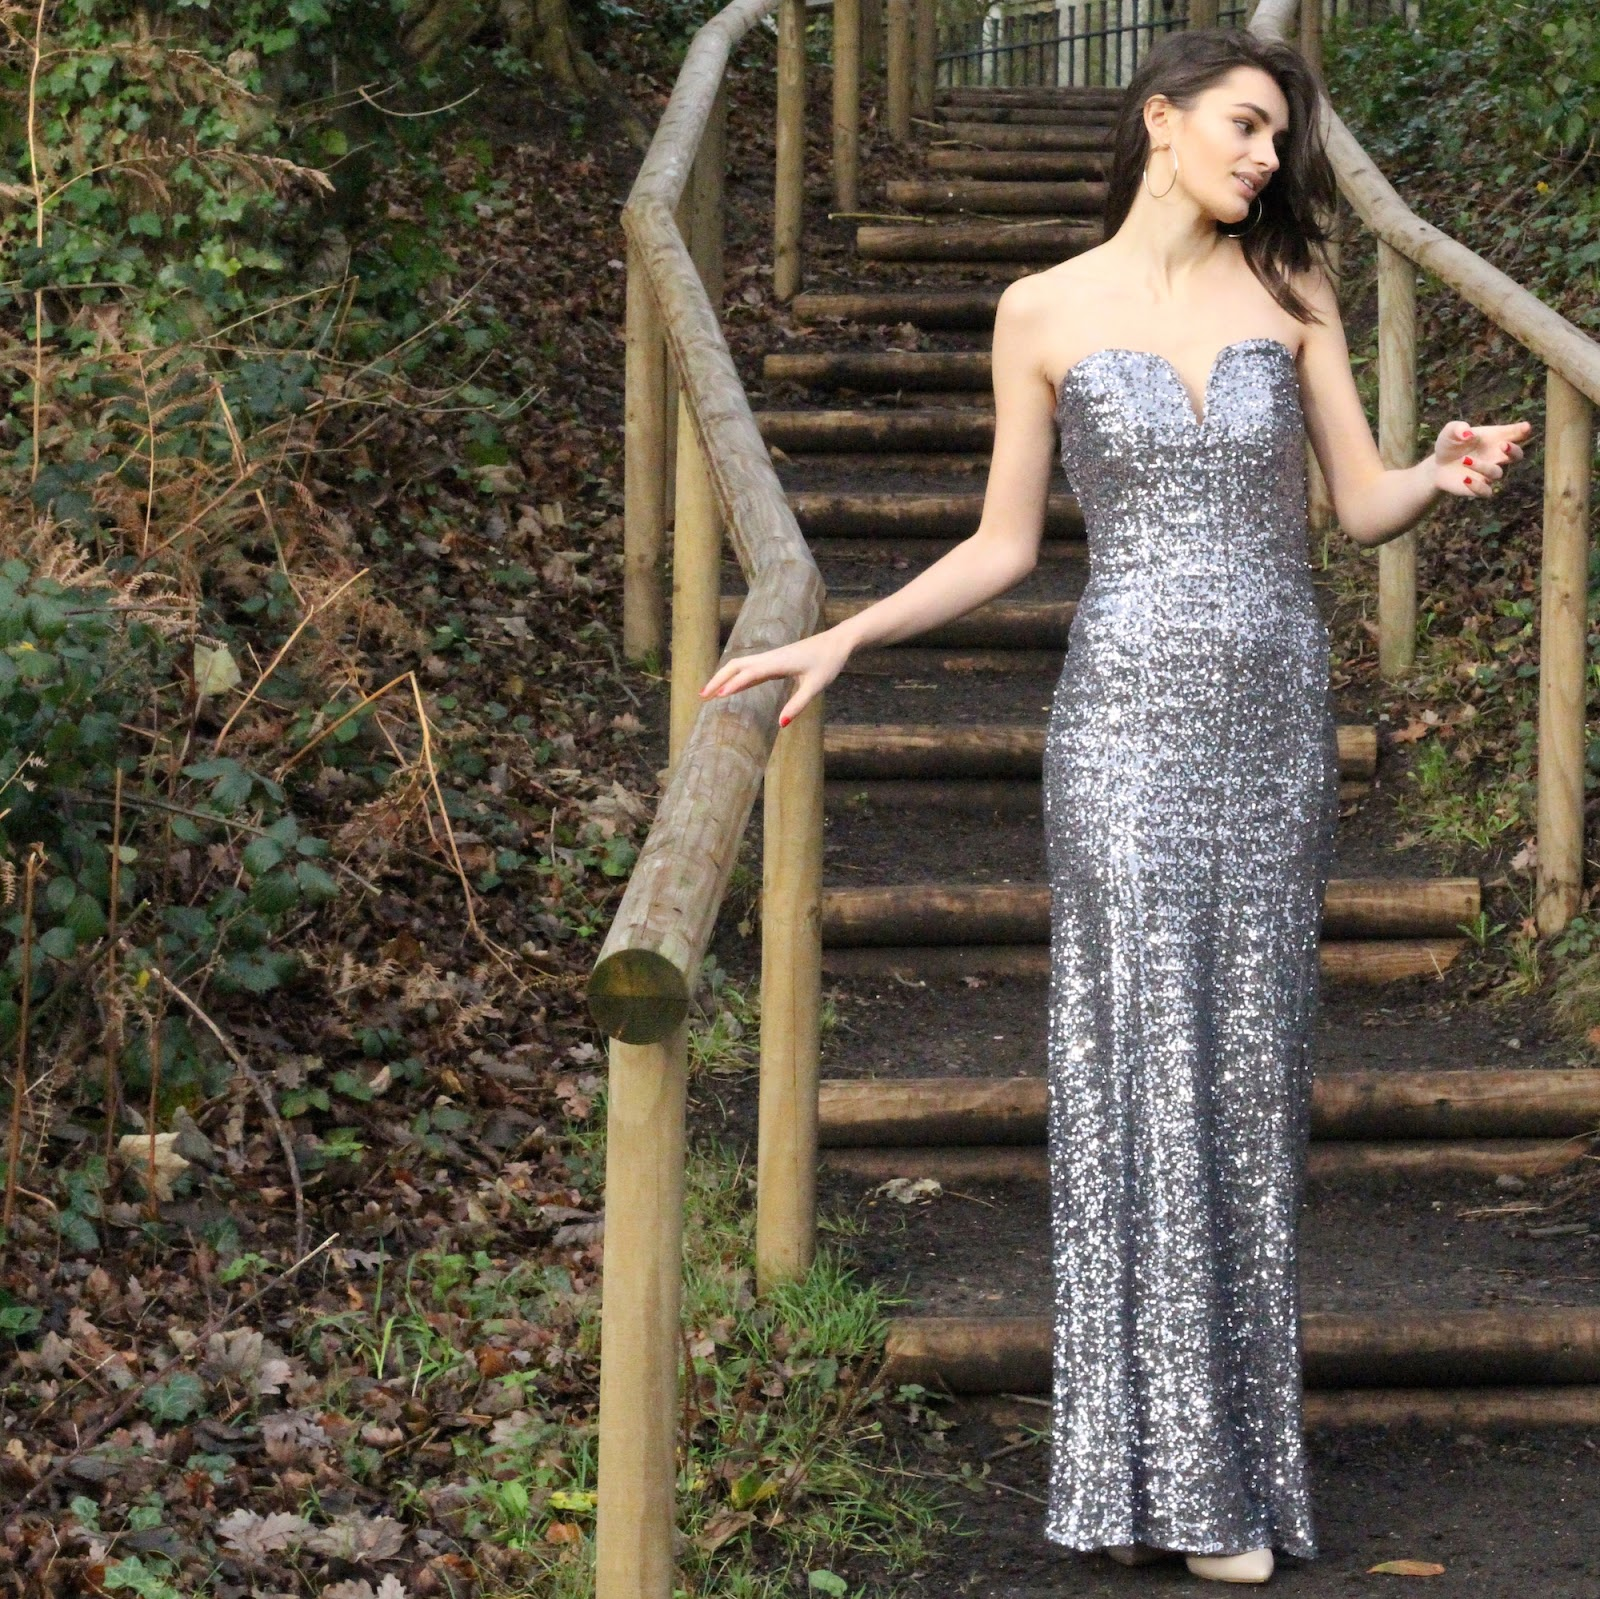 peexo fashion blogger wearing sequin maxi dress from tfnc